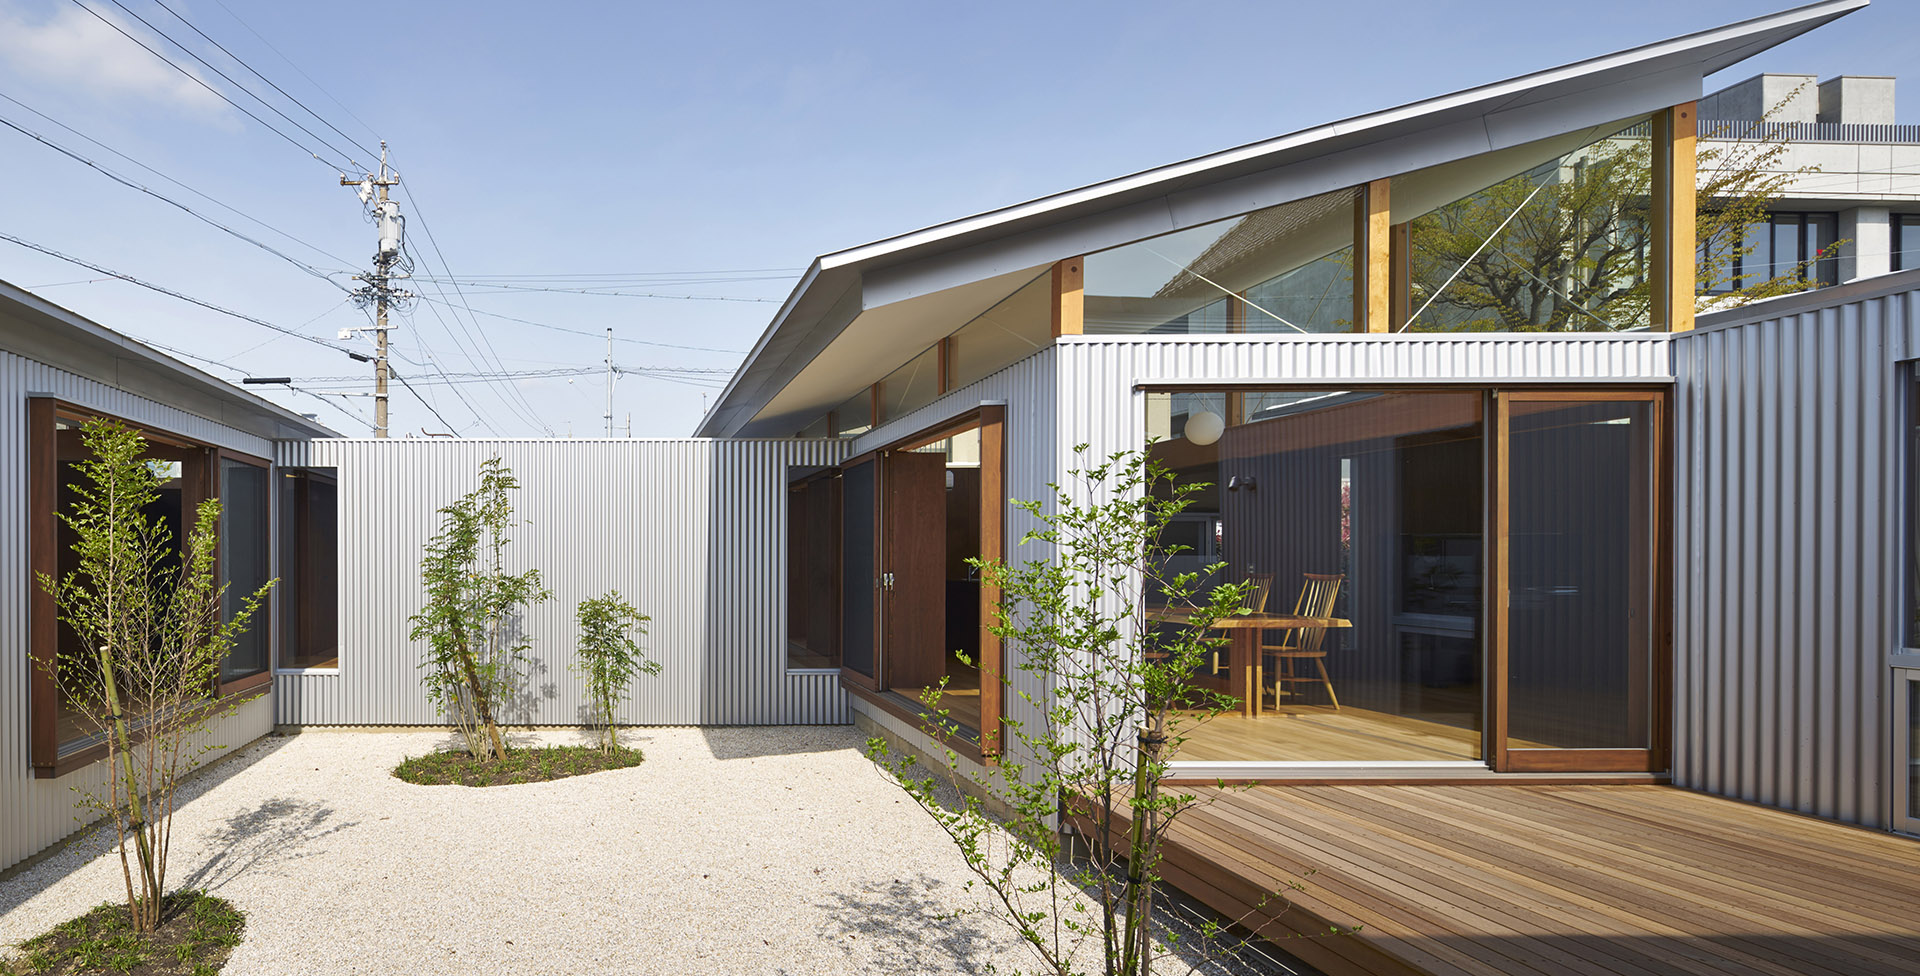 Independent wooden house